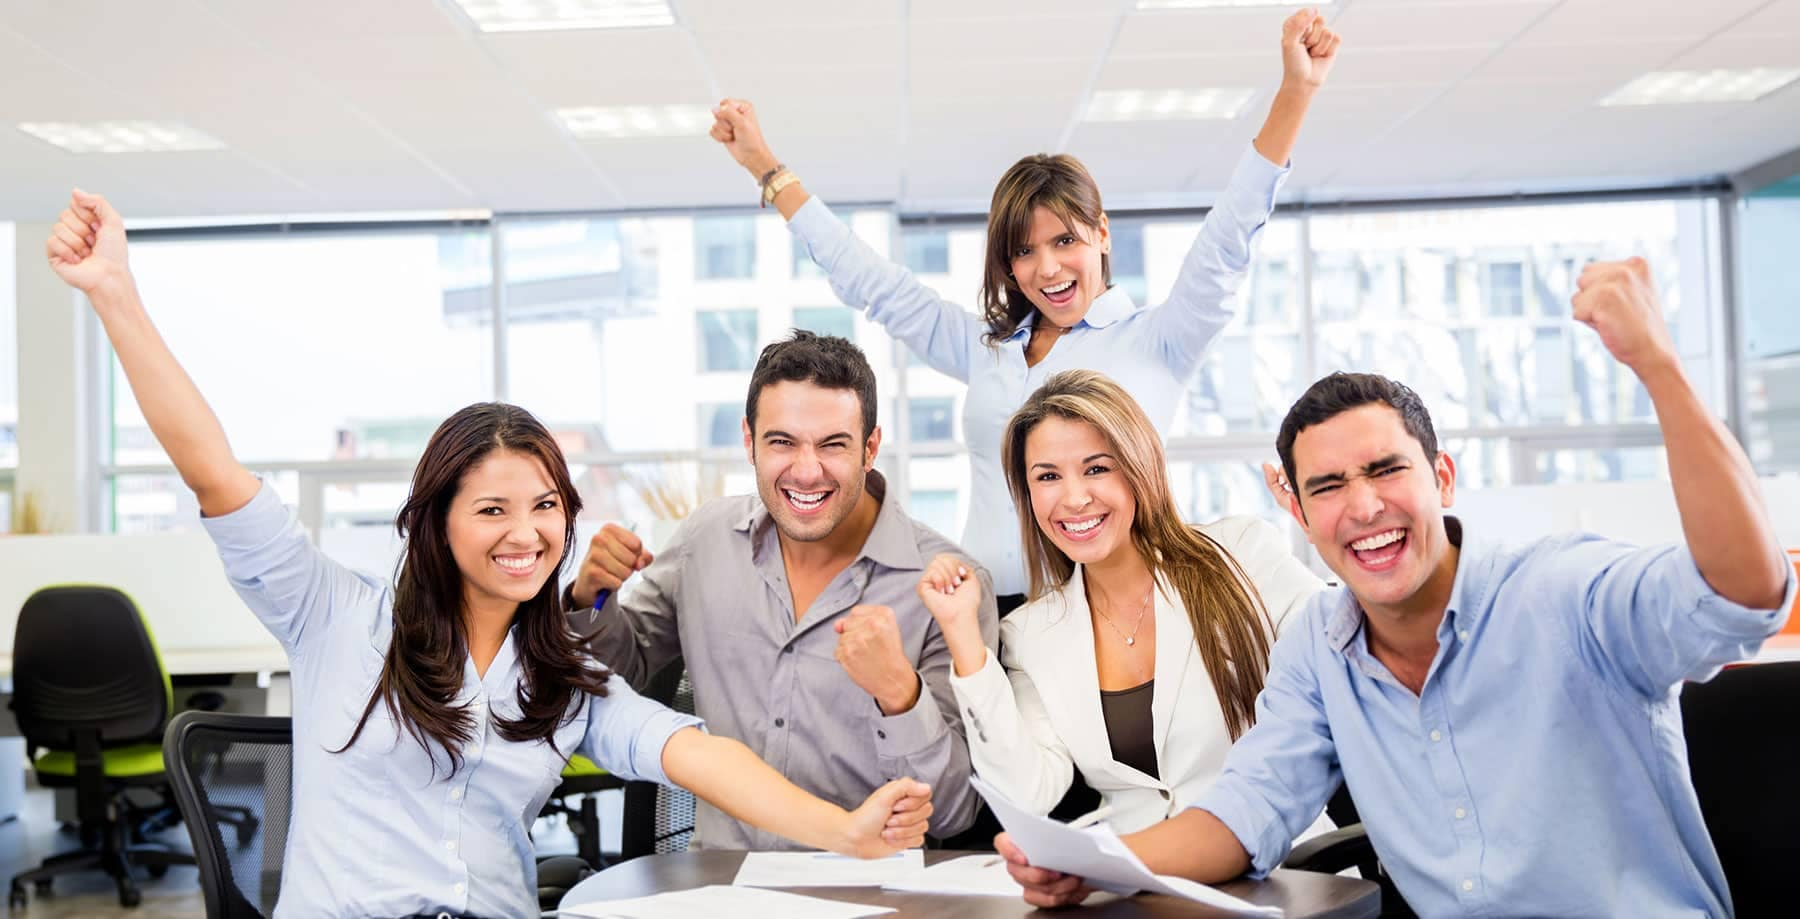 office workers raising hands for joy